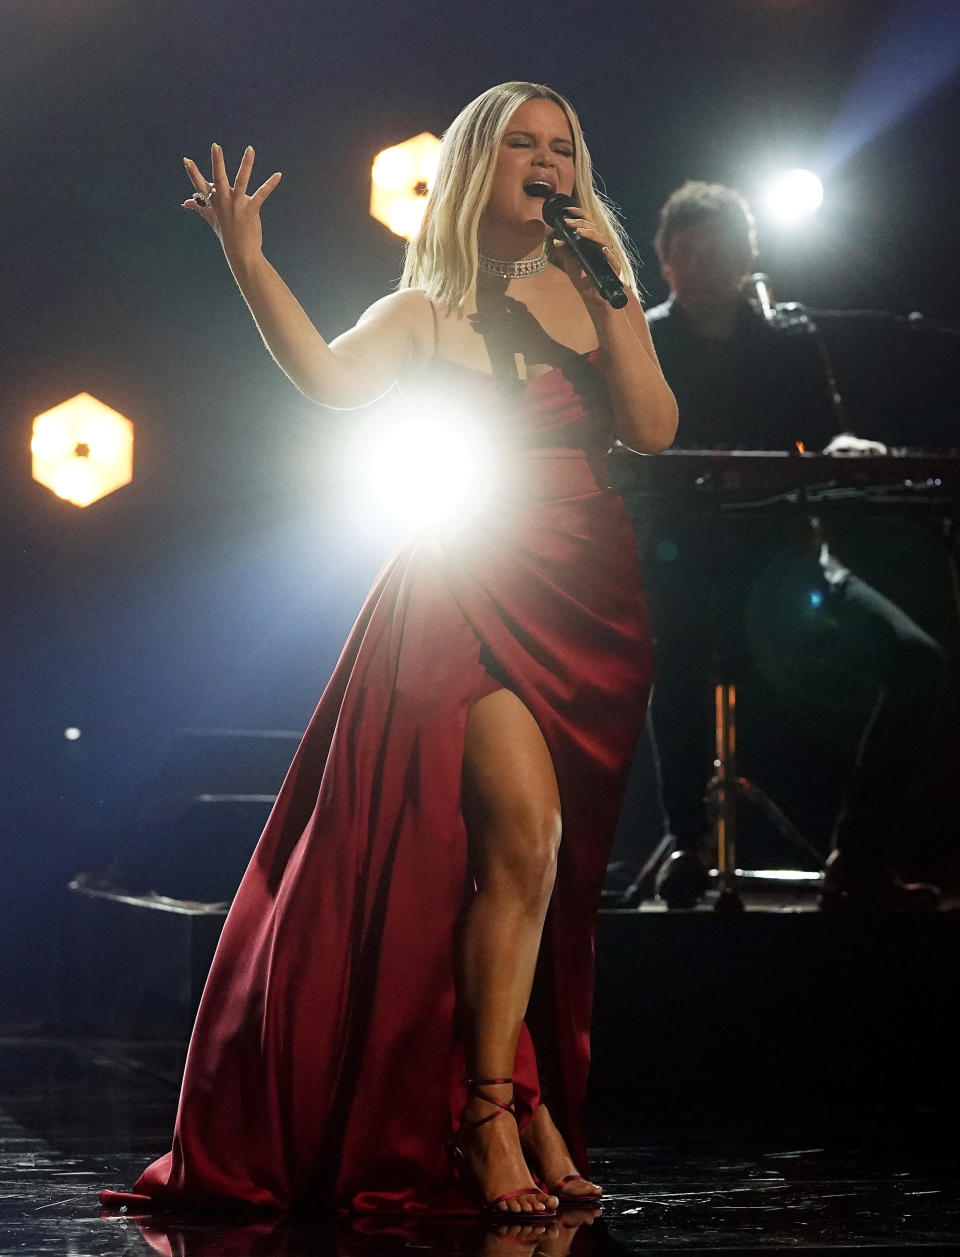 """FILE - Maren Morris performs """"The Bones"""" at the 63rd Grammy Awards on March 9, 2021 in Los Angeles. Morris turns 31 on April 10. (AP Photo/Chris Pizzello, File)"""